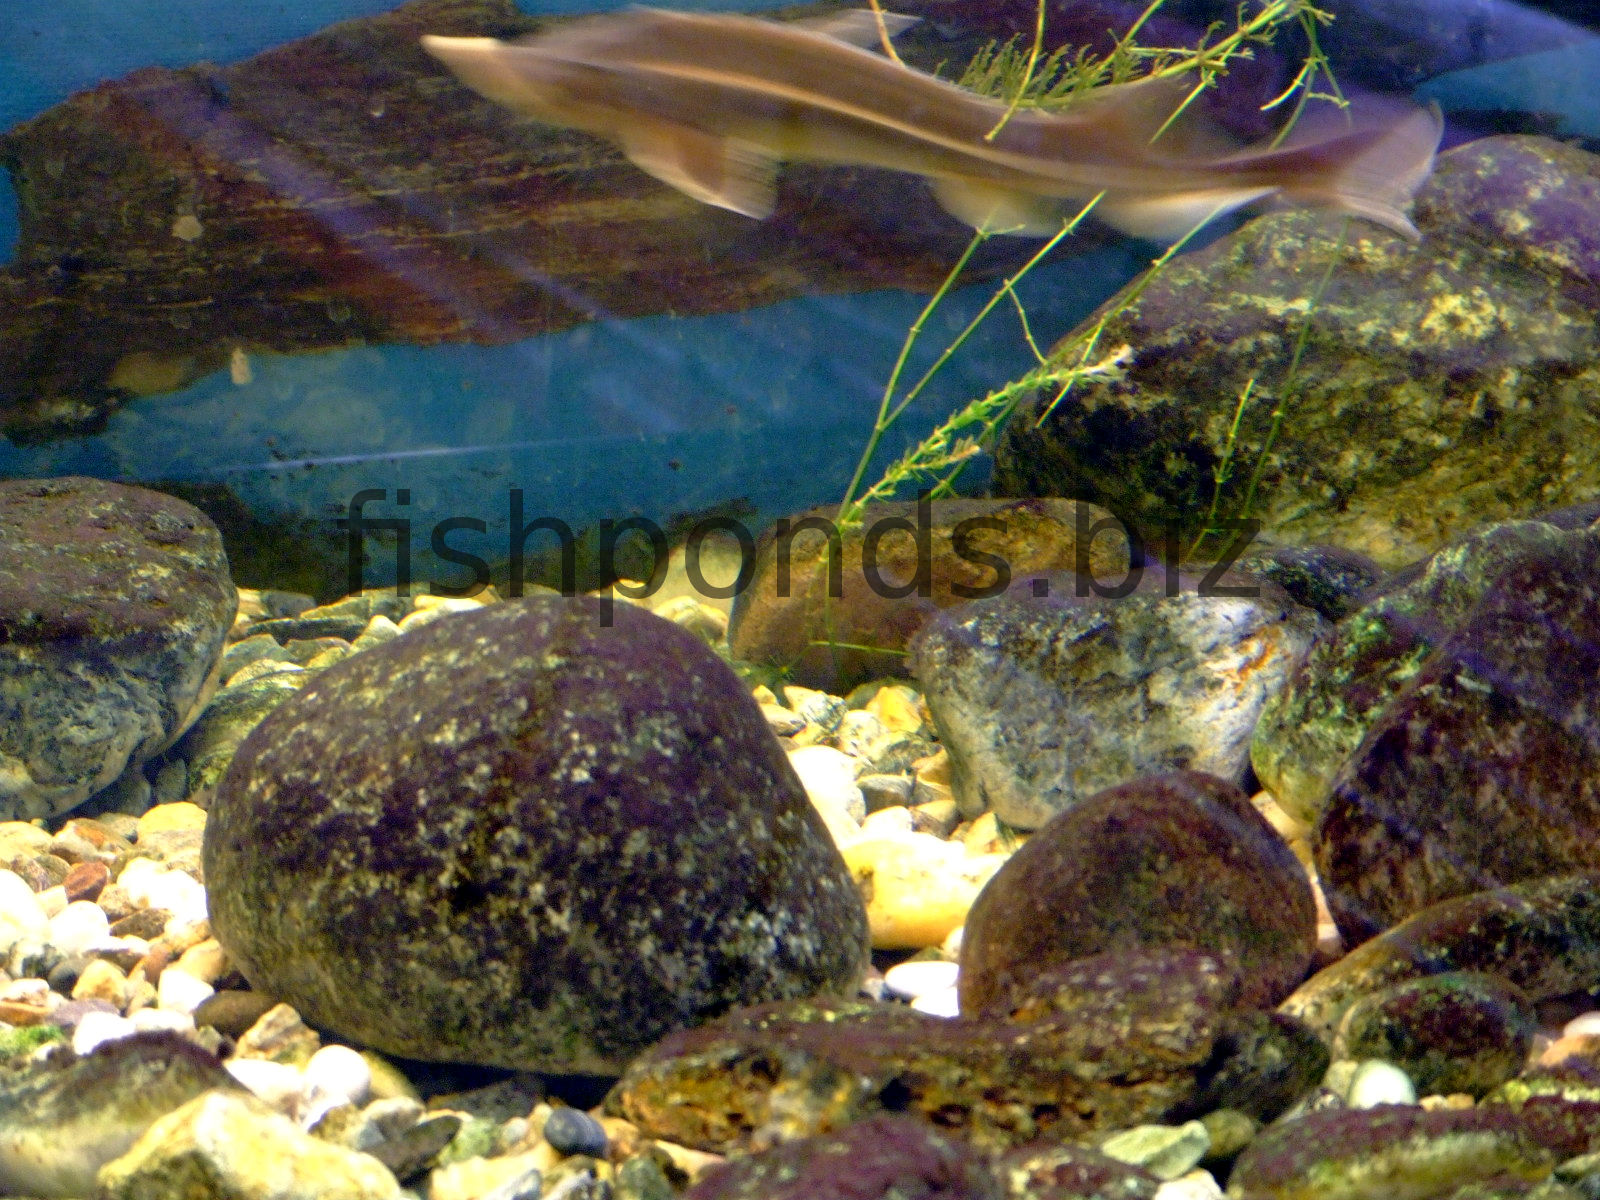 Fish tank maintenance tips rocks fish tanks aquariums for How to clean fish tank rocks